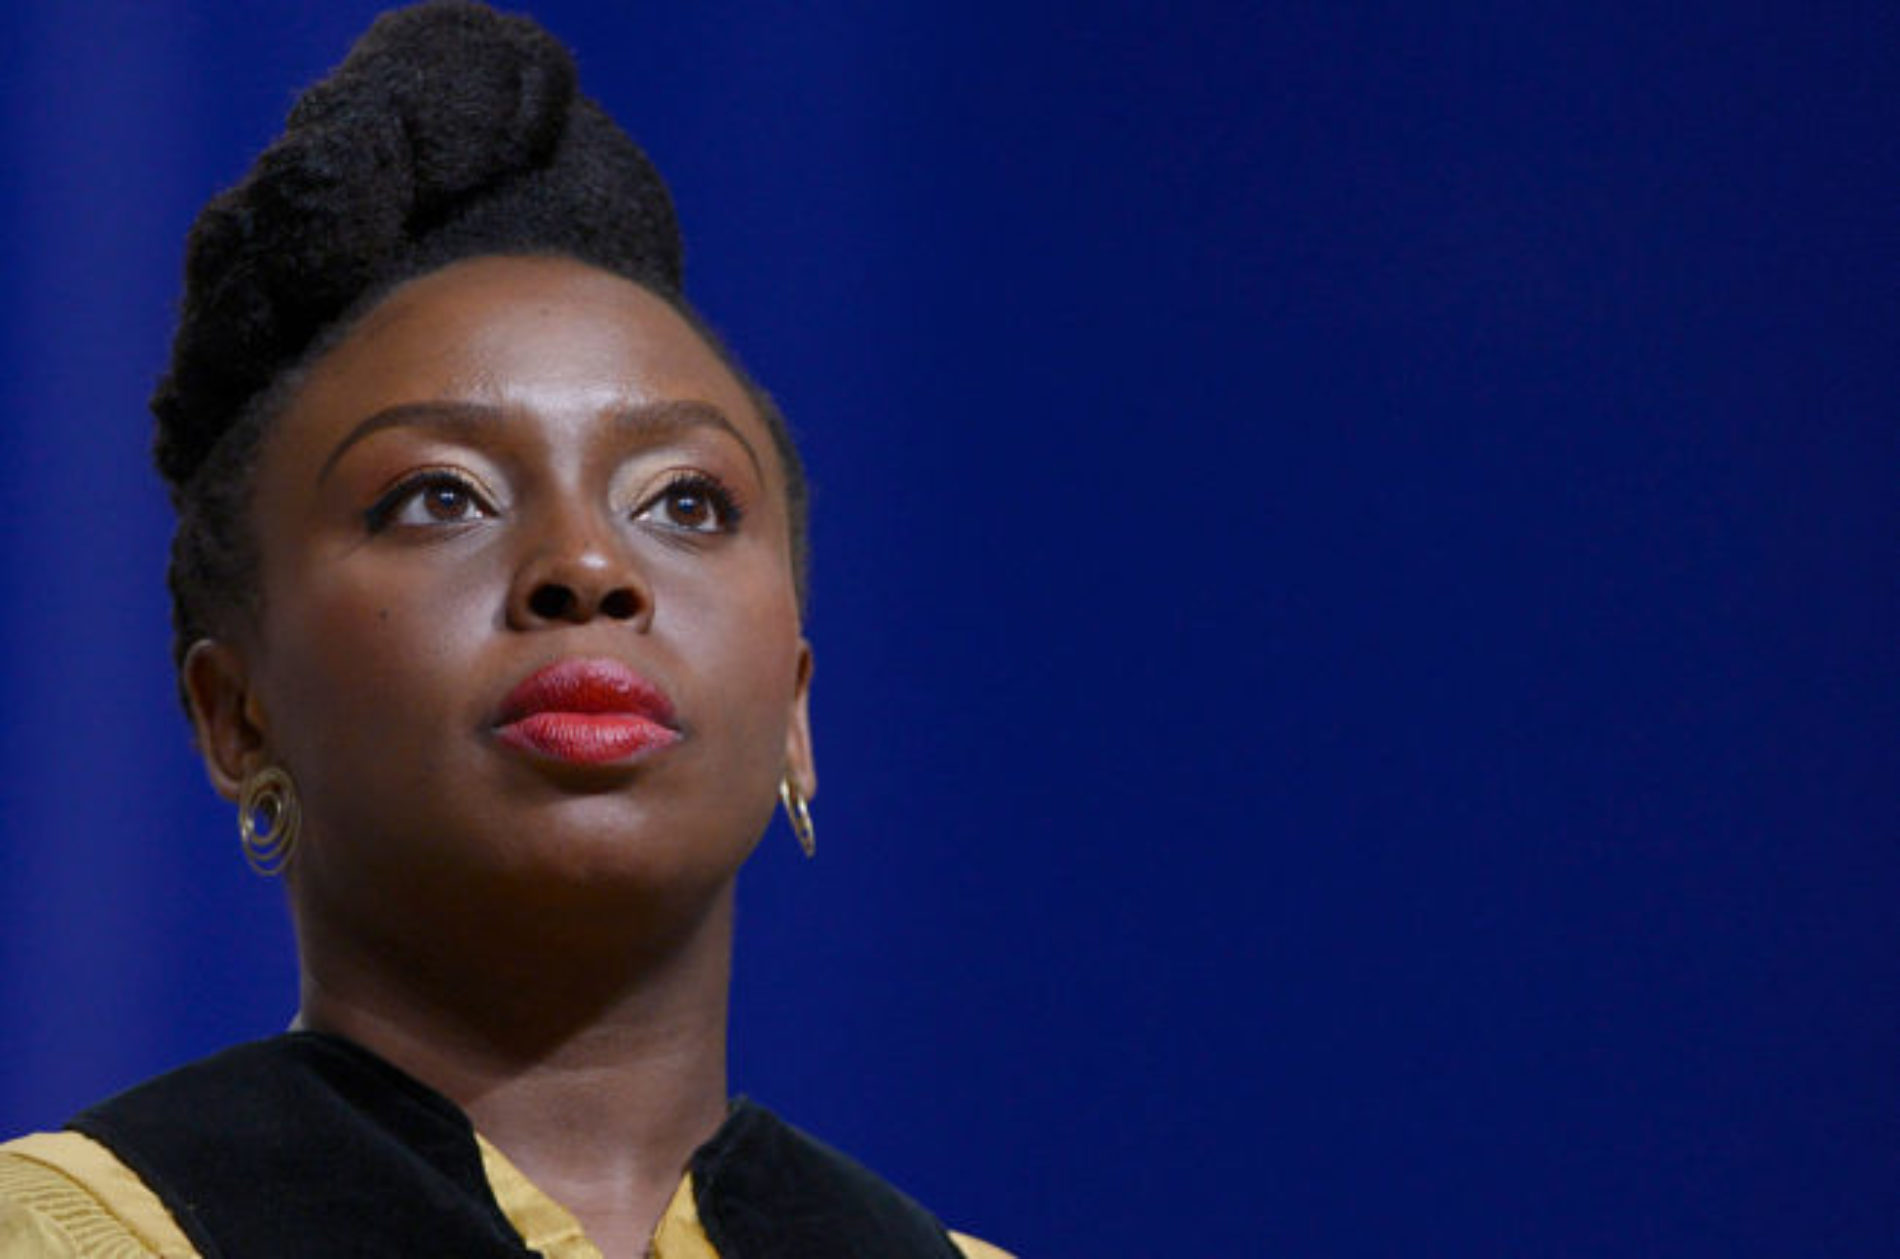 Chimamanda Ngozi Adichie refuses to apologise for trans women comments